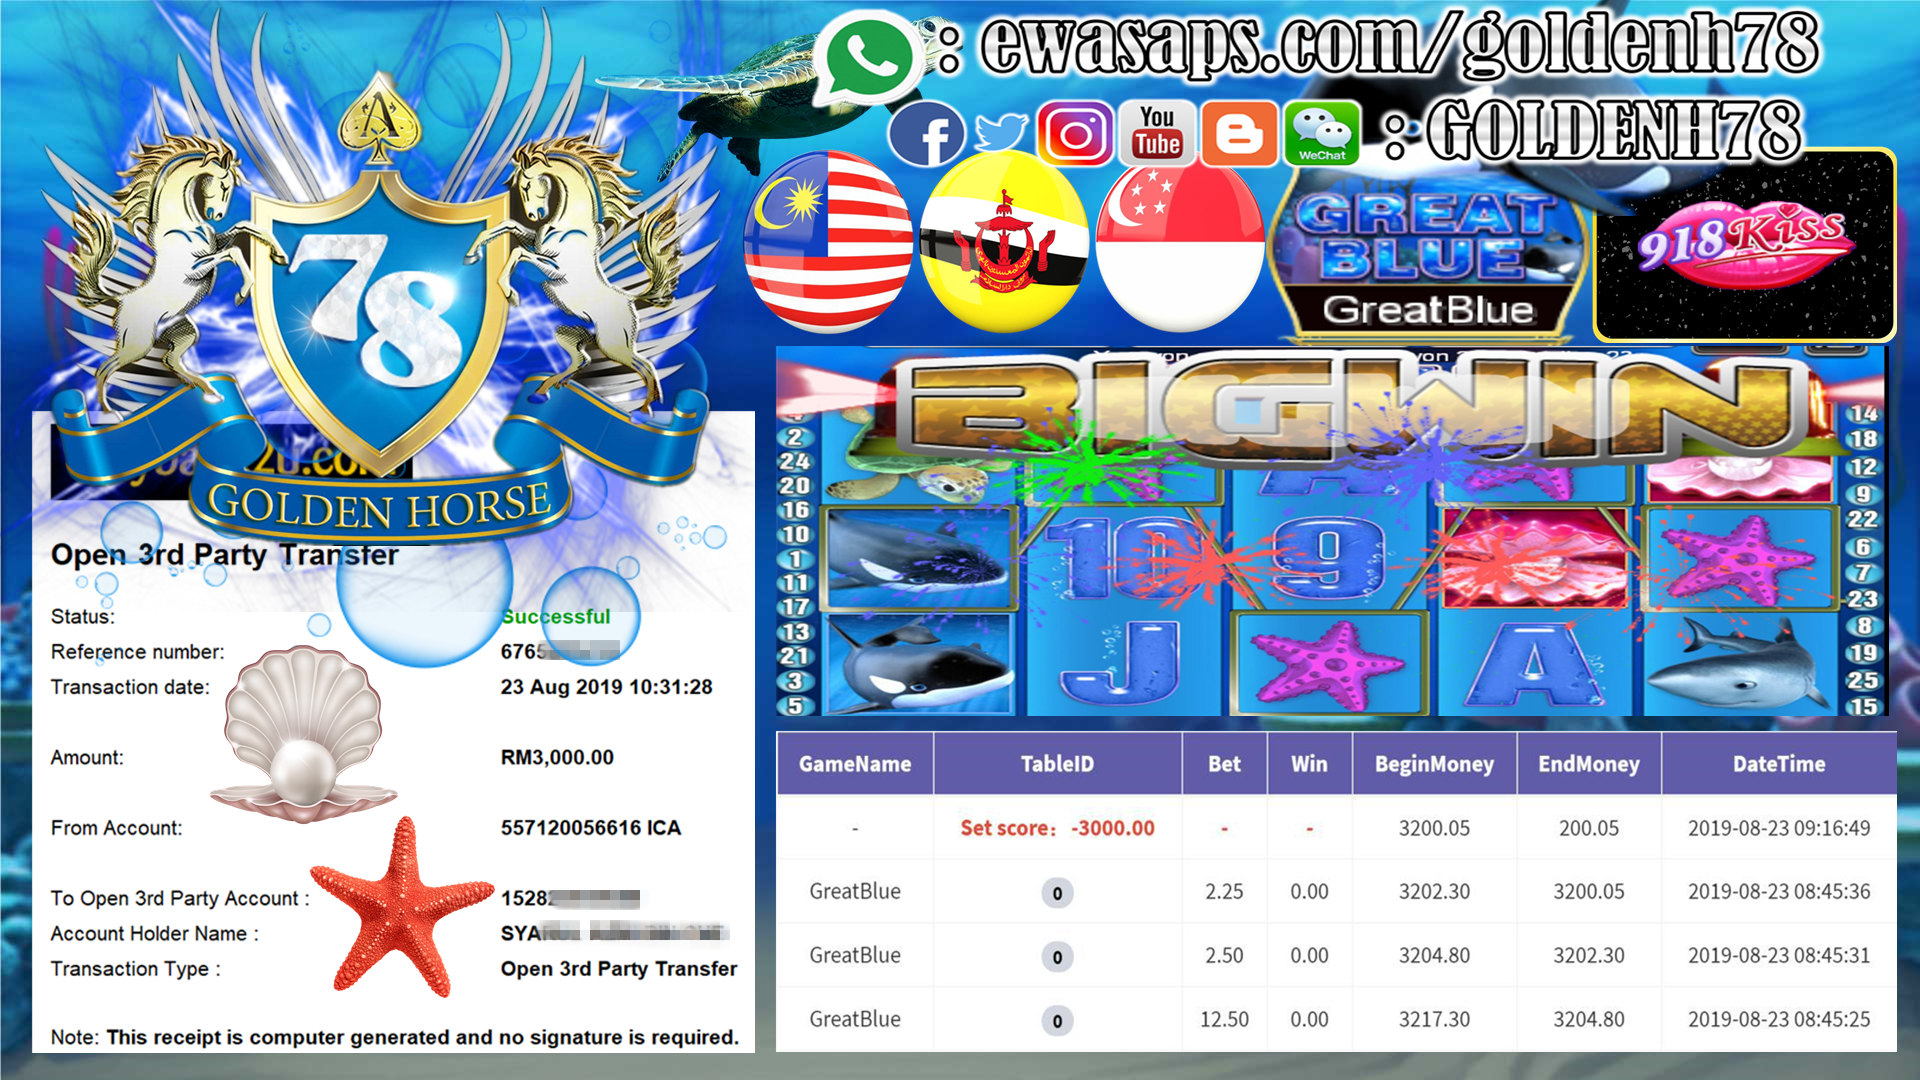 MEMBER MAIN 918KISS FT.GREAT BLUE OUT RM3,000